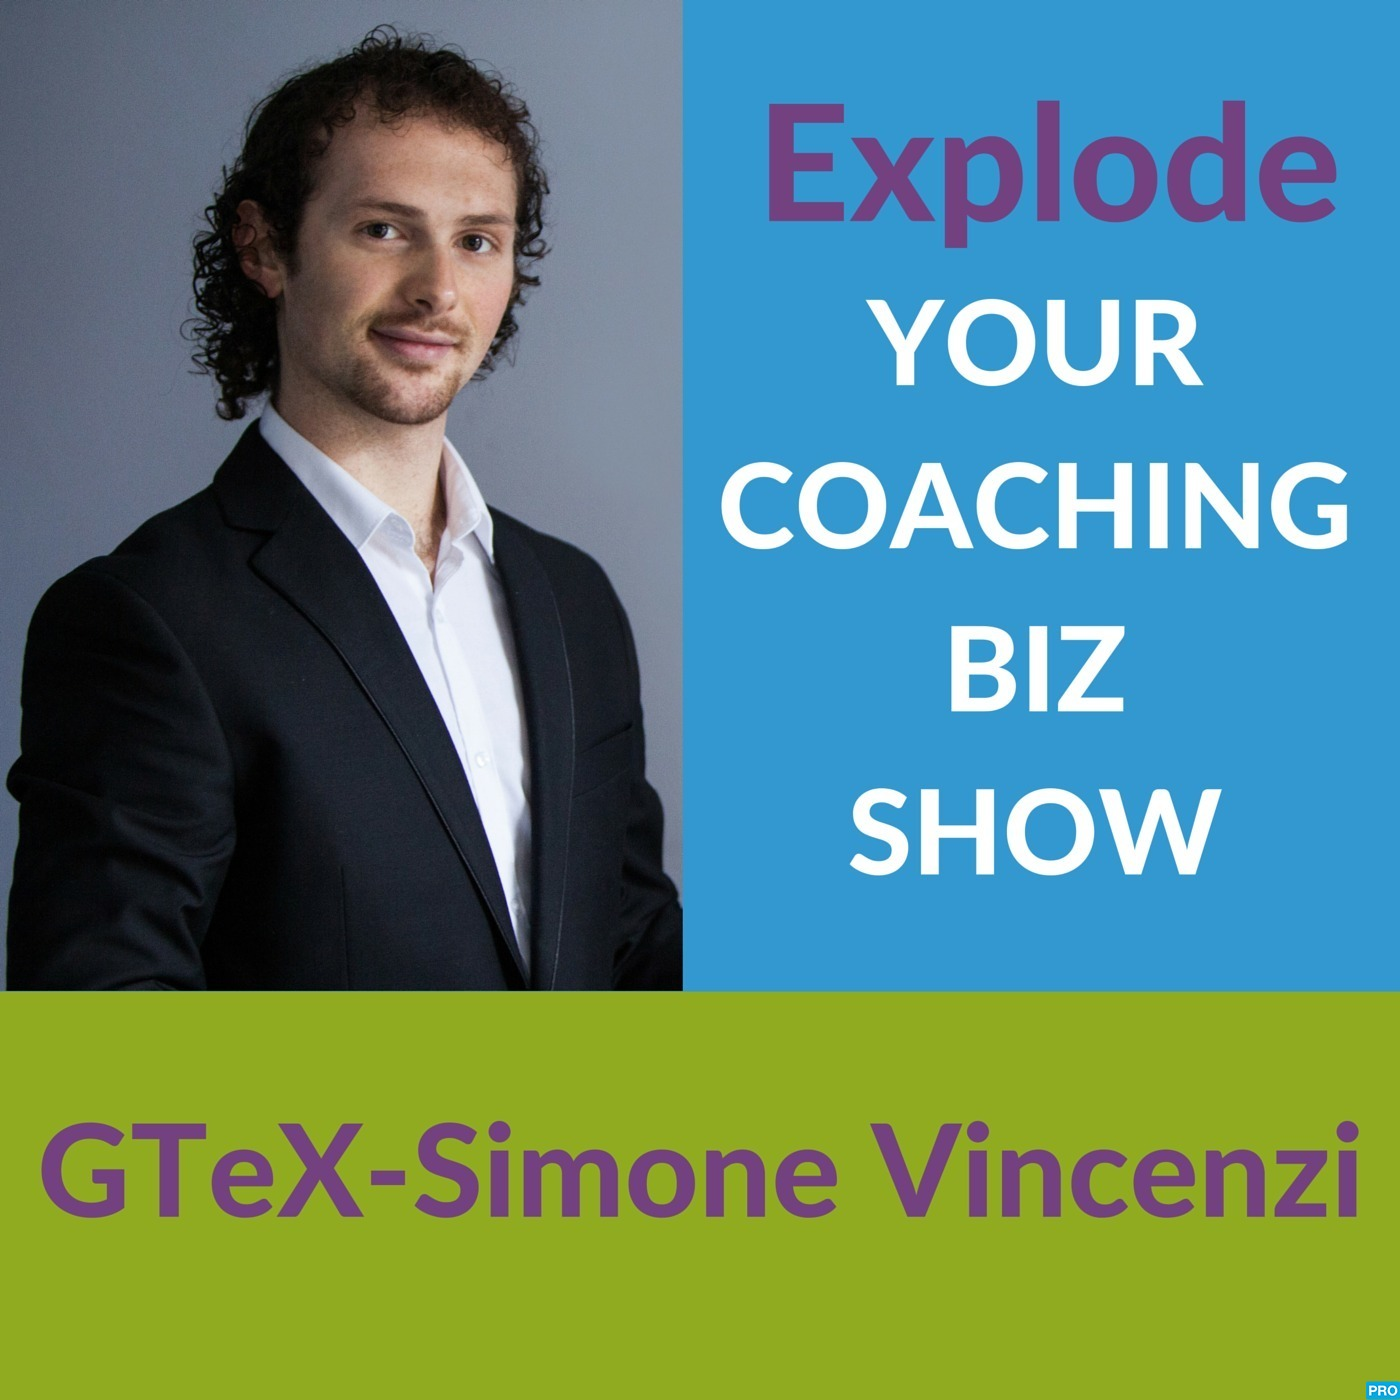 Explode Your Coaching Biz Show